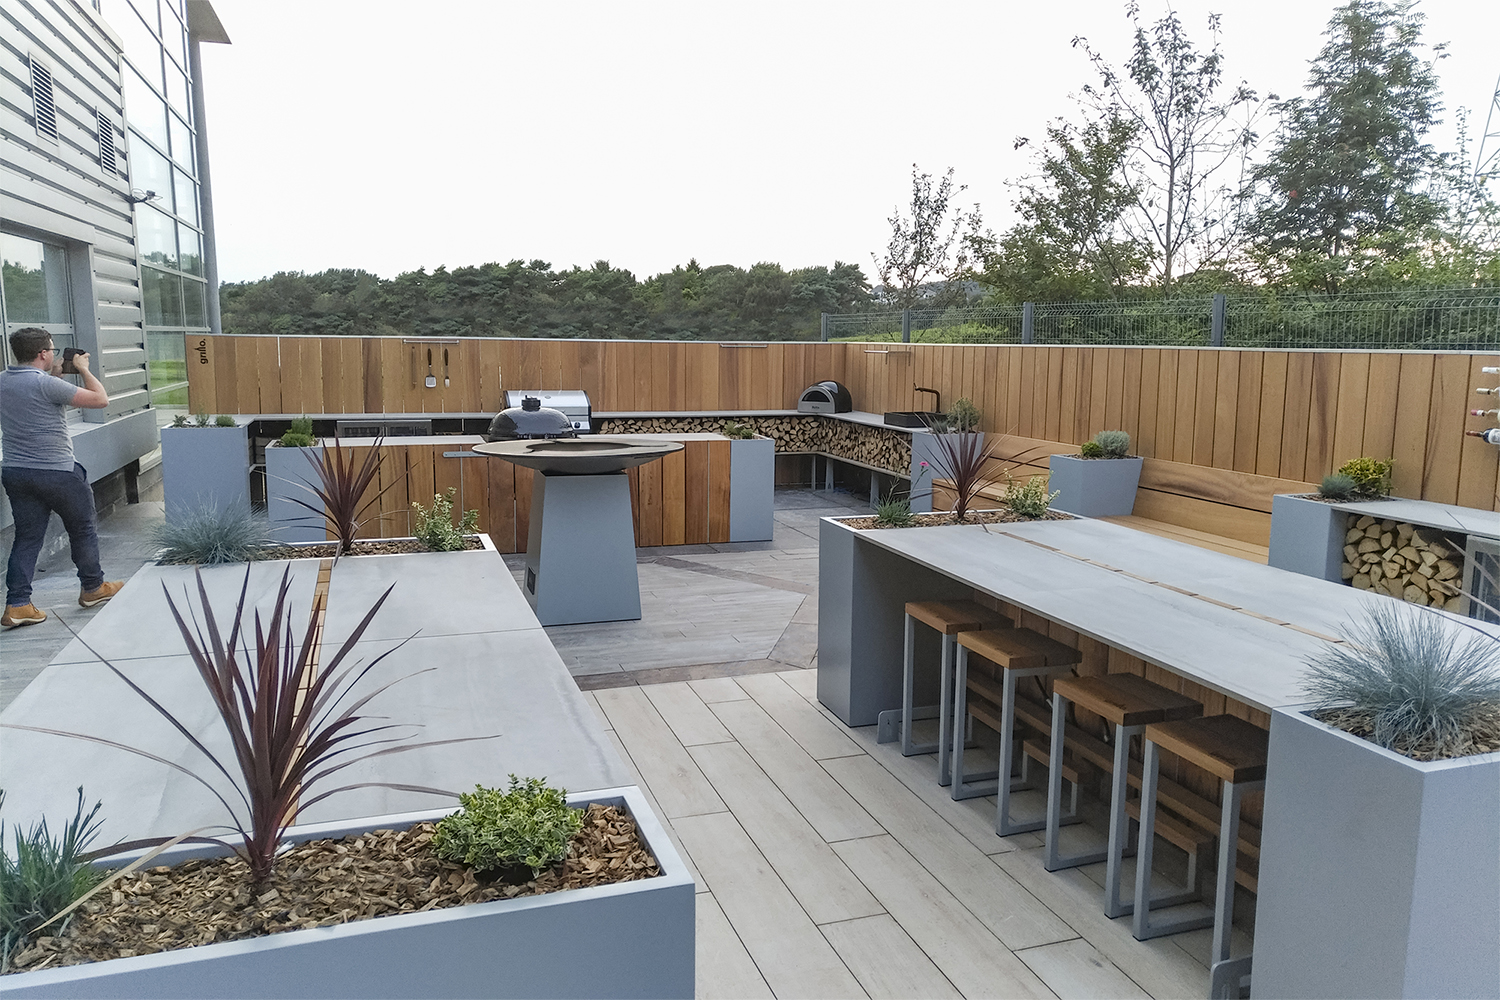 Havwoods Grillo outdoor kitchen project seating, Chef's Anvil BBQs pizza oven, sink island planter